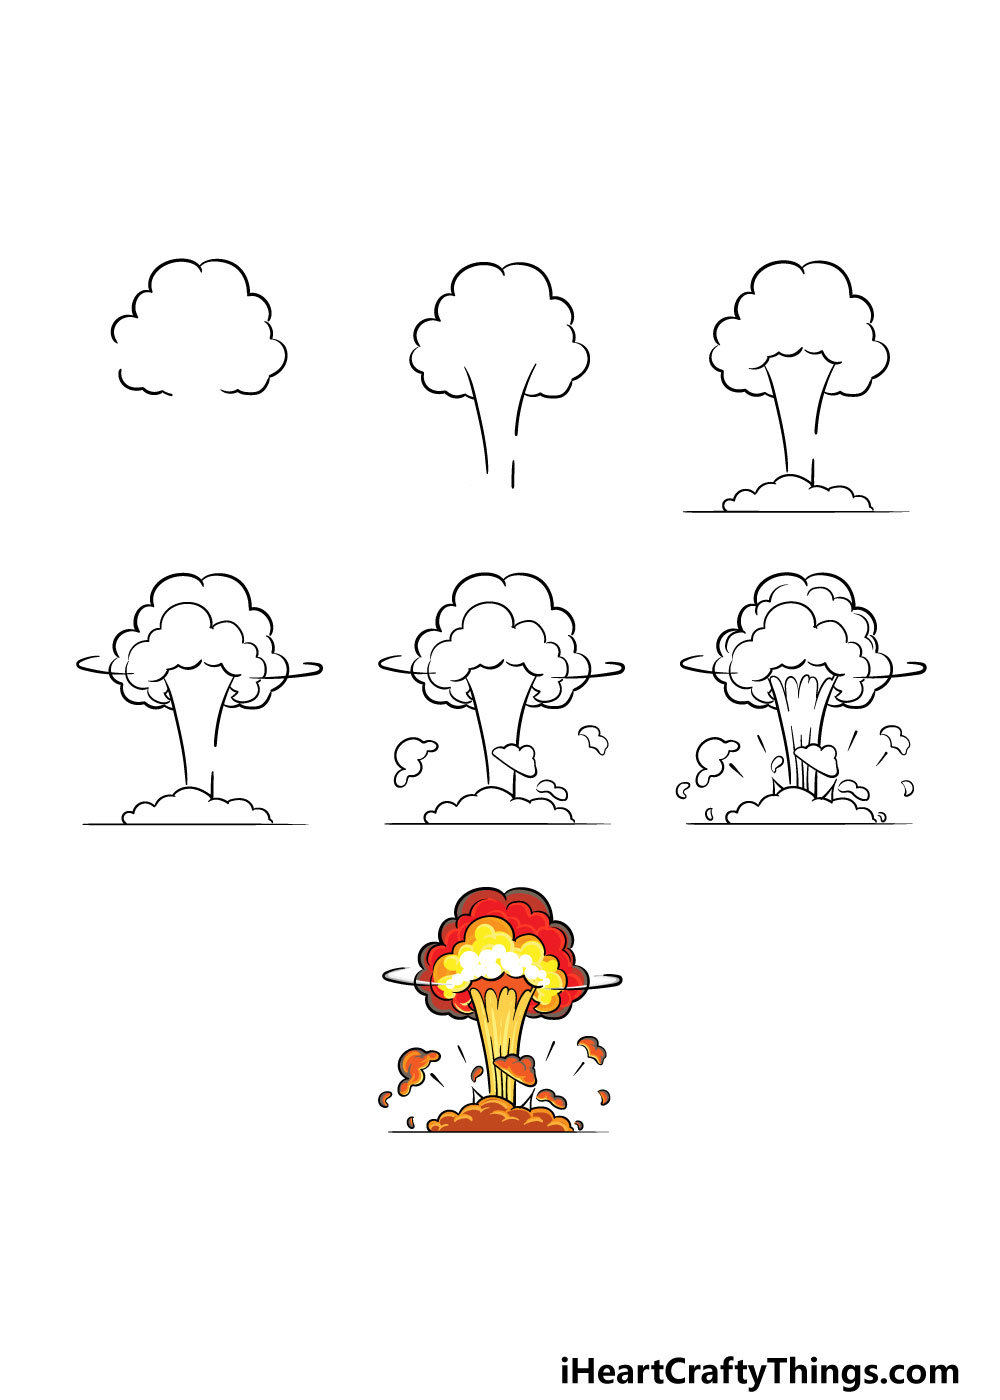 how to draw an explosion in 7 steps